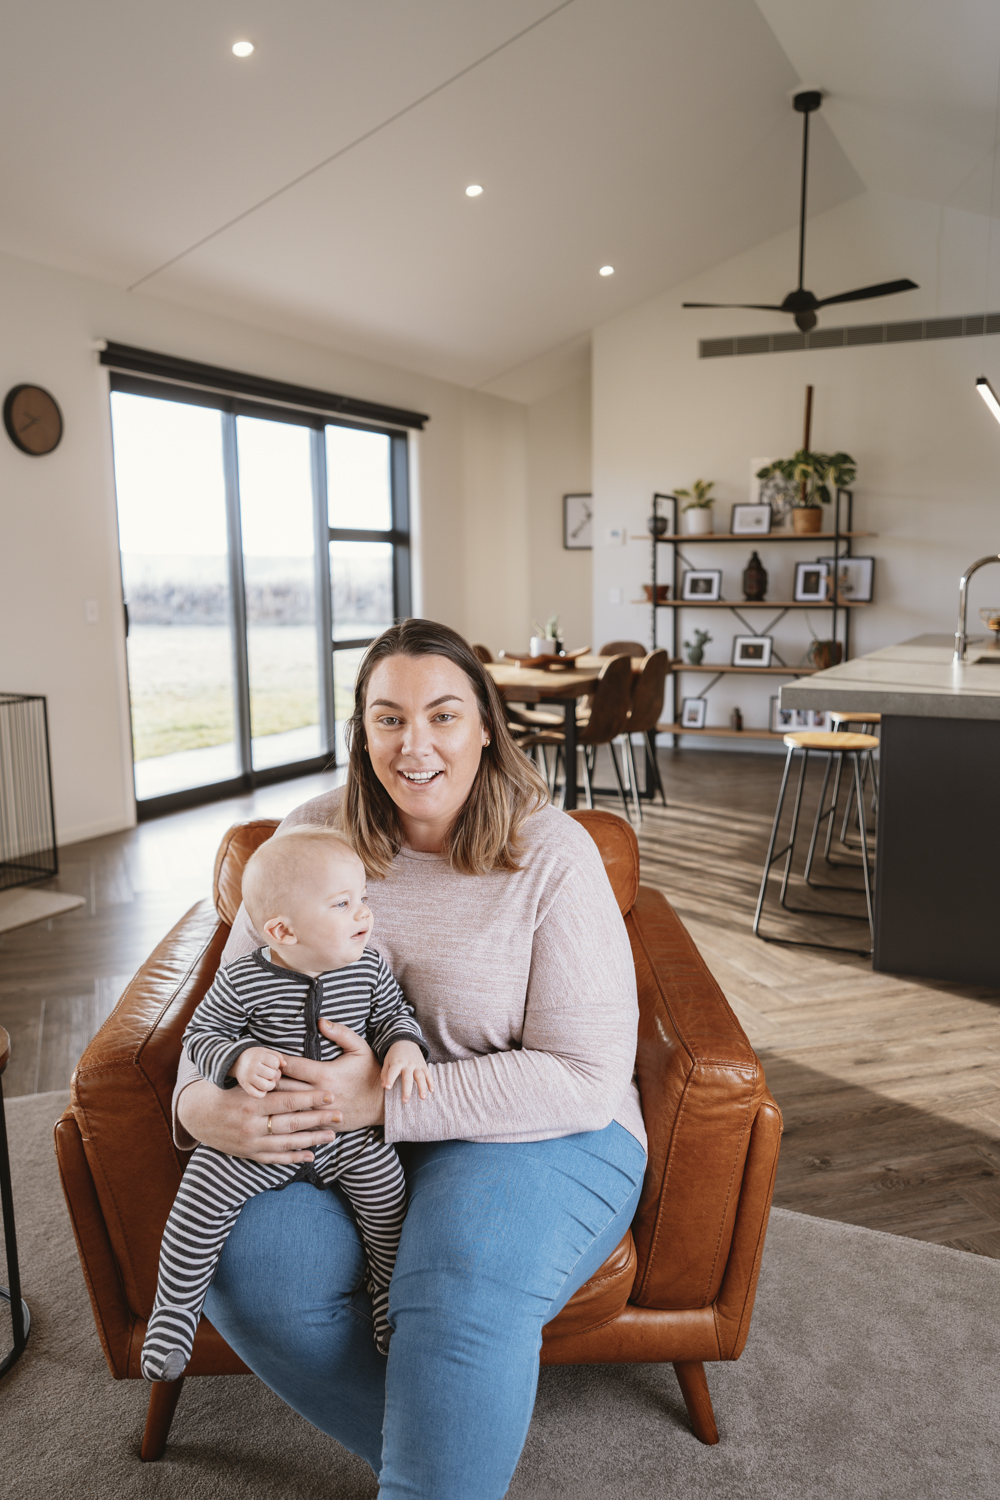 A lady and her baby sit happy in their home